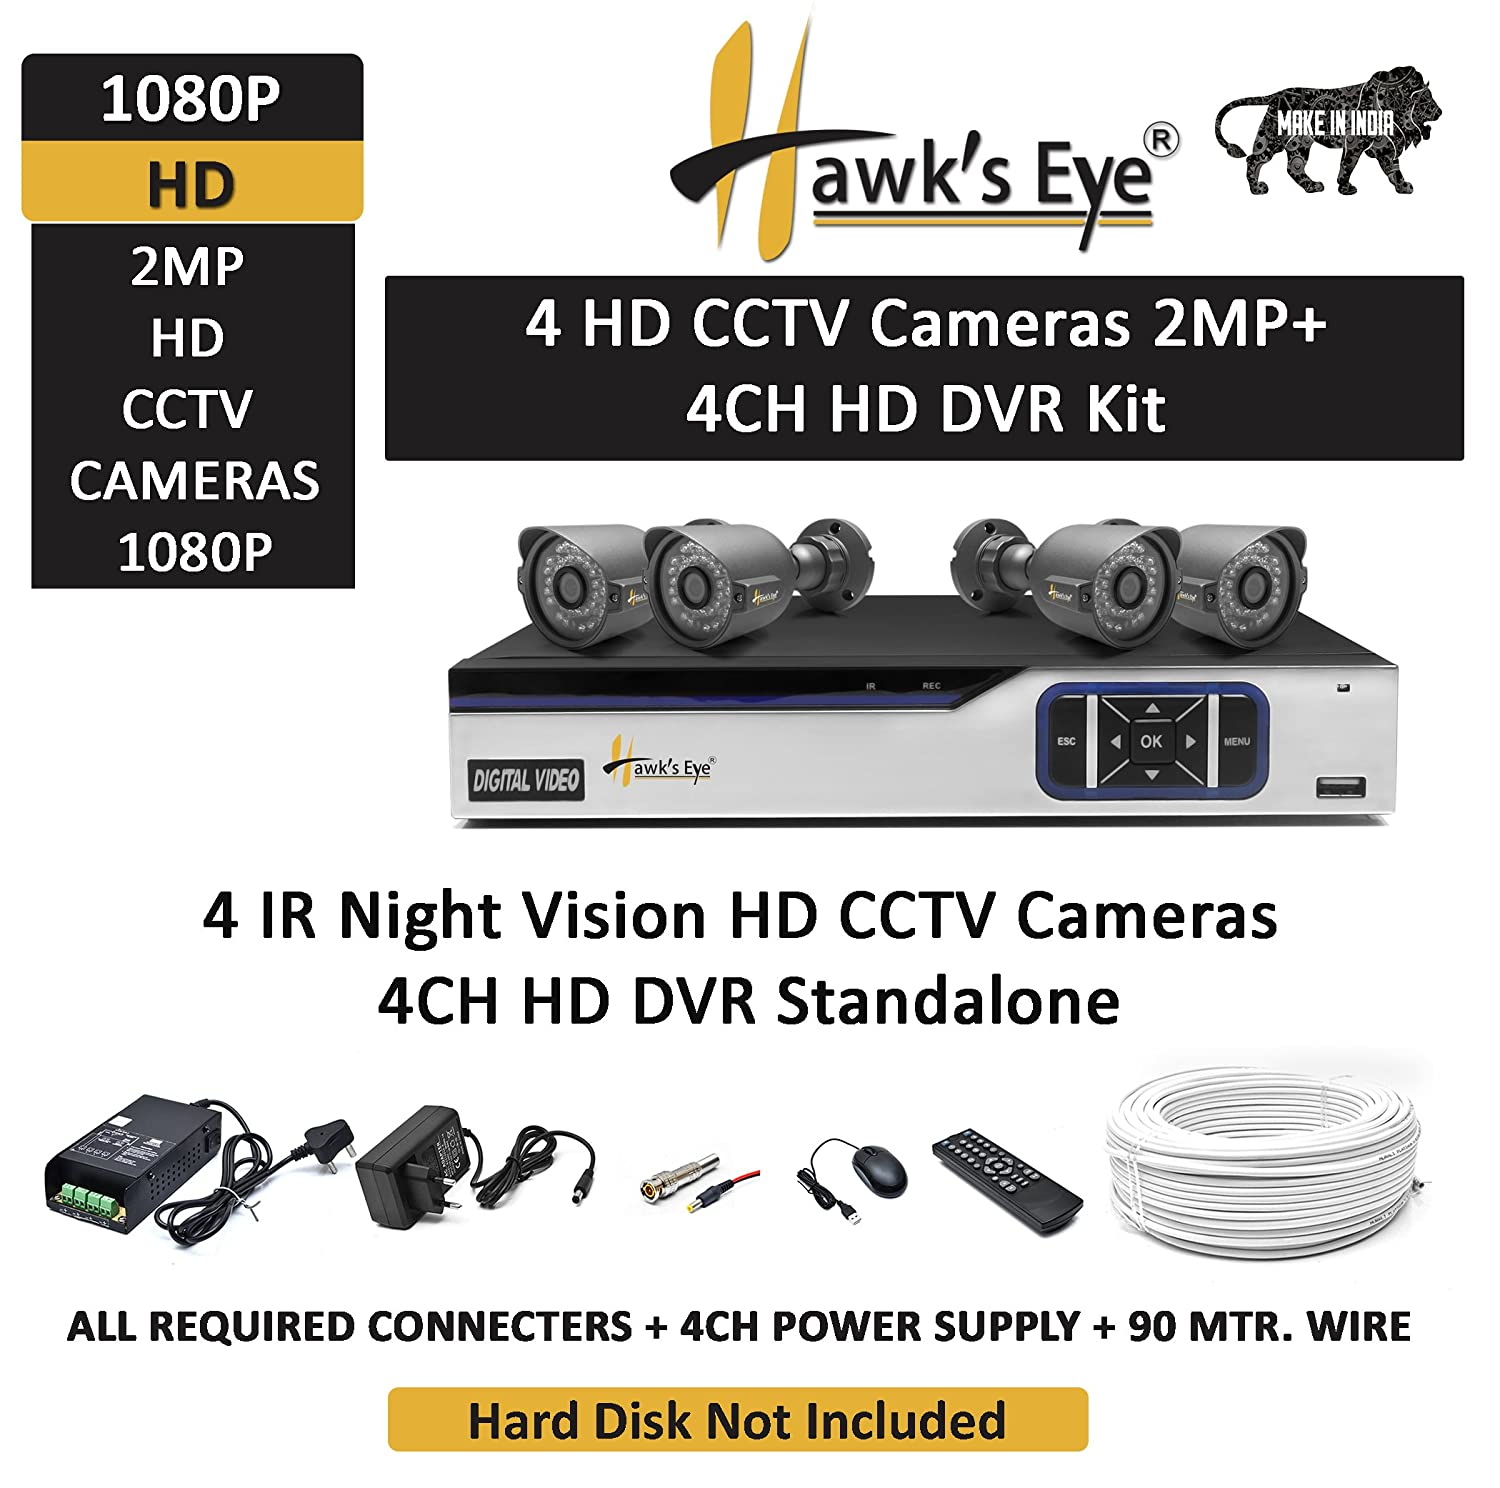 Buy Hawks Eye Hd 2 Mp 4 Cctv Bullet Cameras Night Vision With Dvr Standalone Channel Kit Online At Low Price In India Camera Reviews